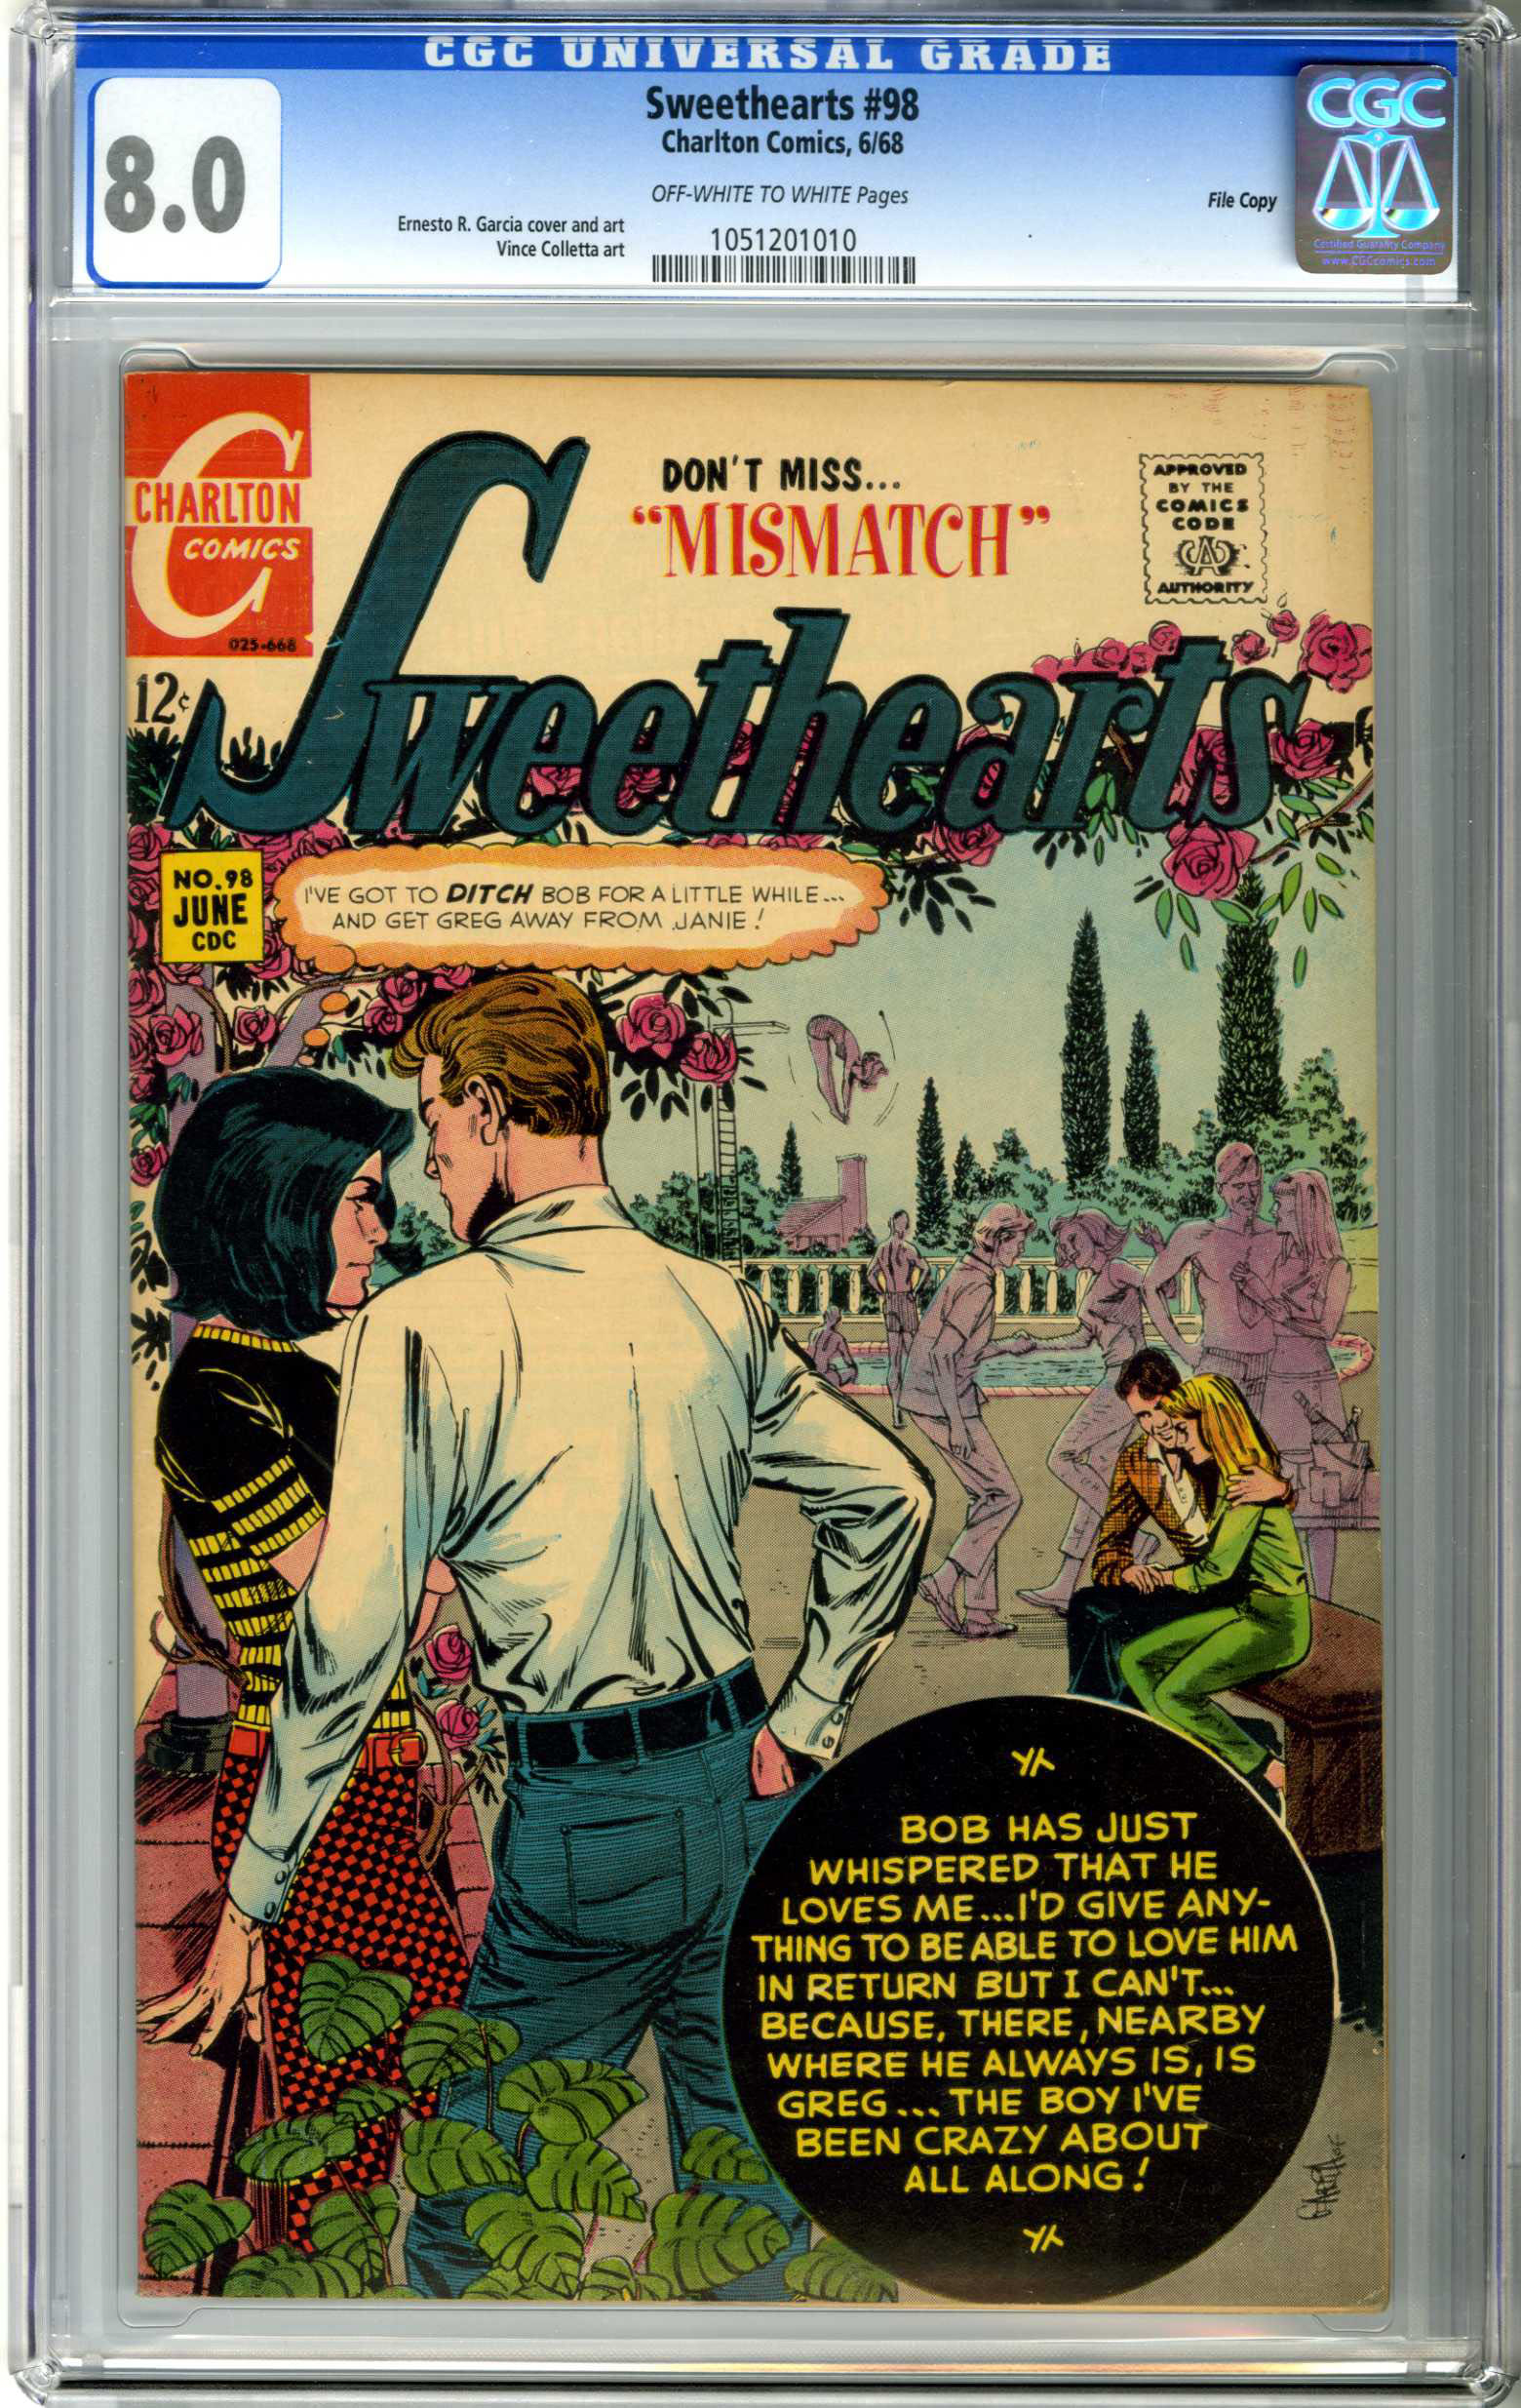 SWEETHEARTS #98 (1968) CGC VF 8.0 OWW Pages FILE COPY / MISMATCH